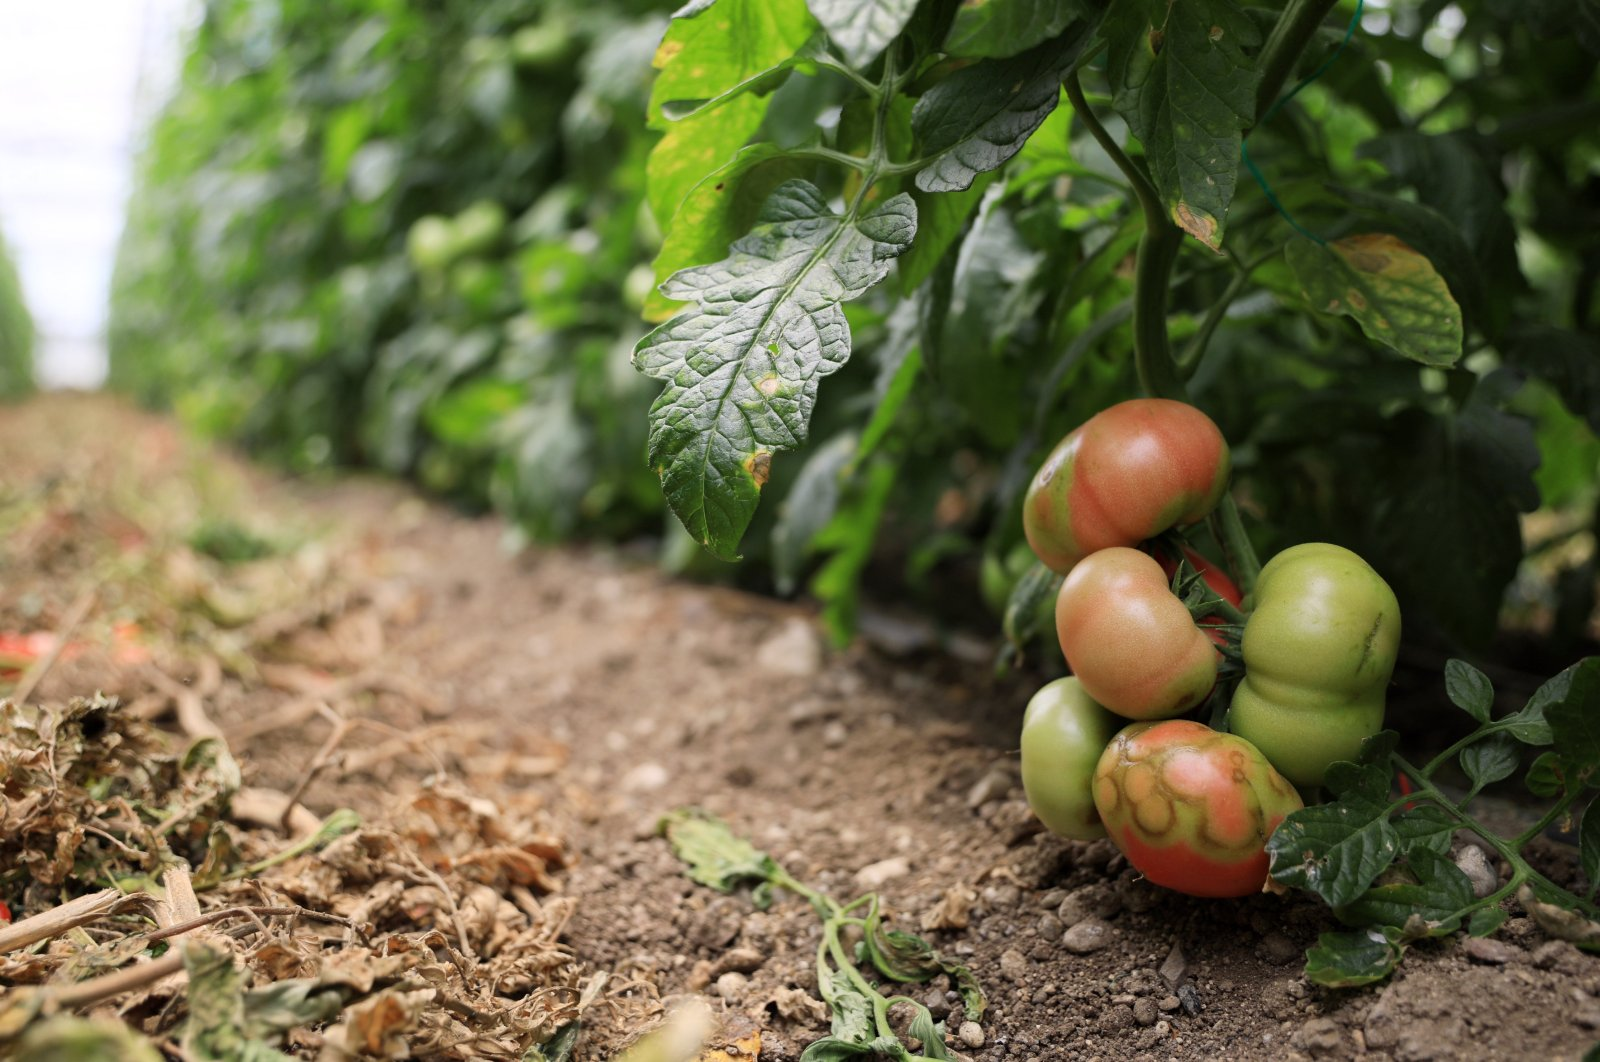 """Tomatoes affected by the """"Israeli virus"""" are seen in a greenhouse in Antalya, Turkey, May 18, 2021. (DHA Photo)"""